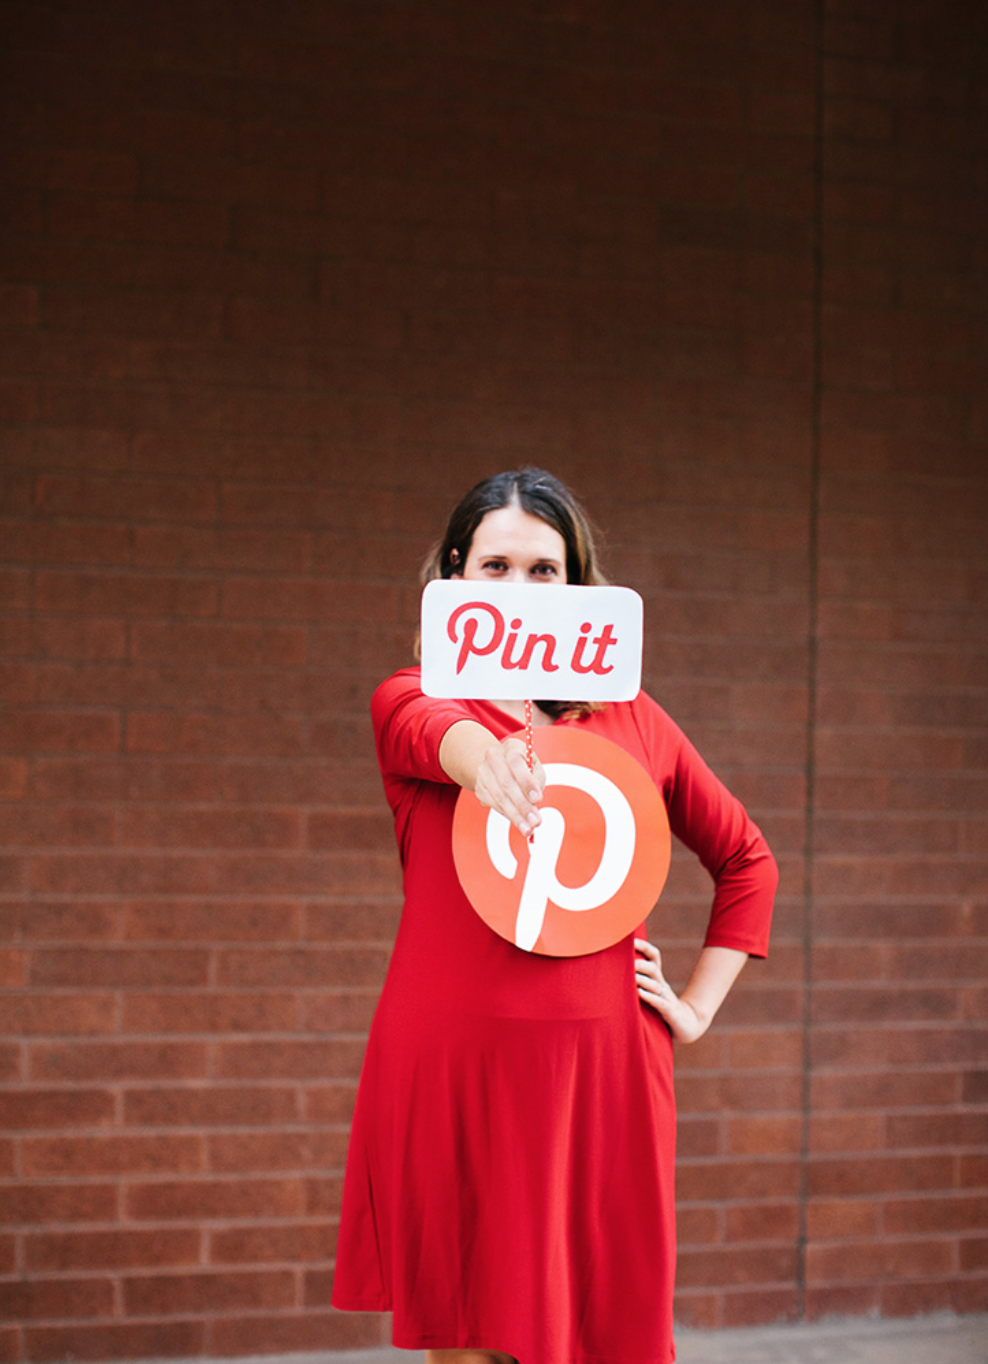 Pinterest - What you'll need: Plain red dress, Pinterest logo print out,  Pin it logo print-out and a hot glue gun.